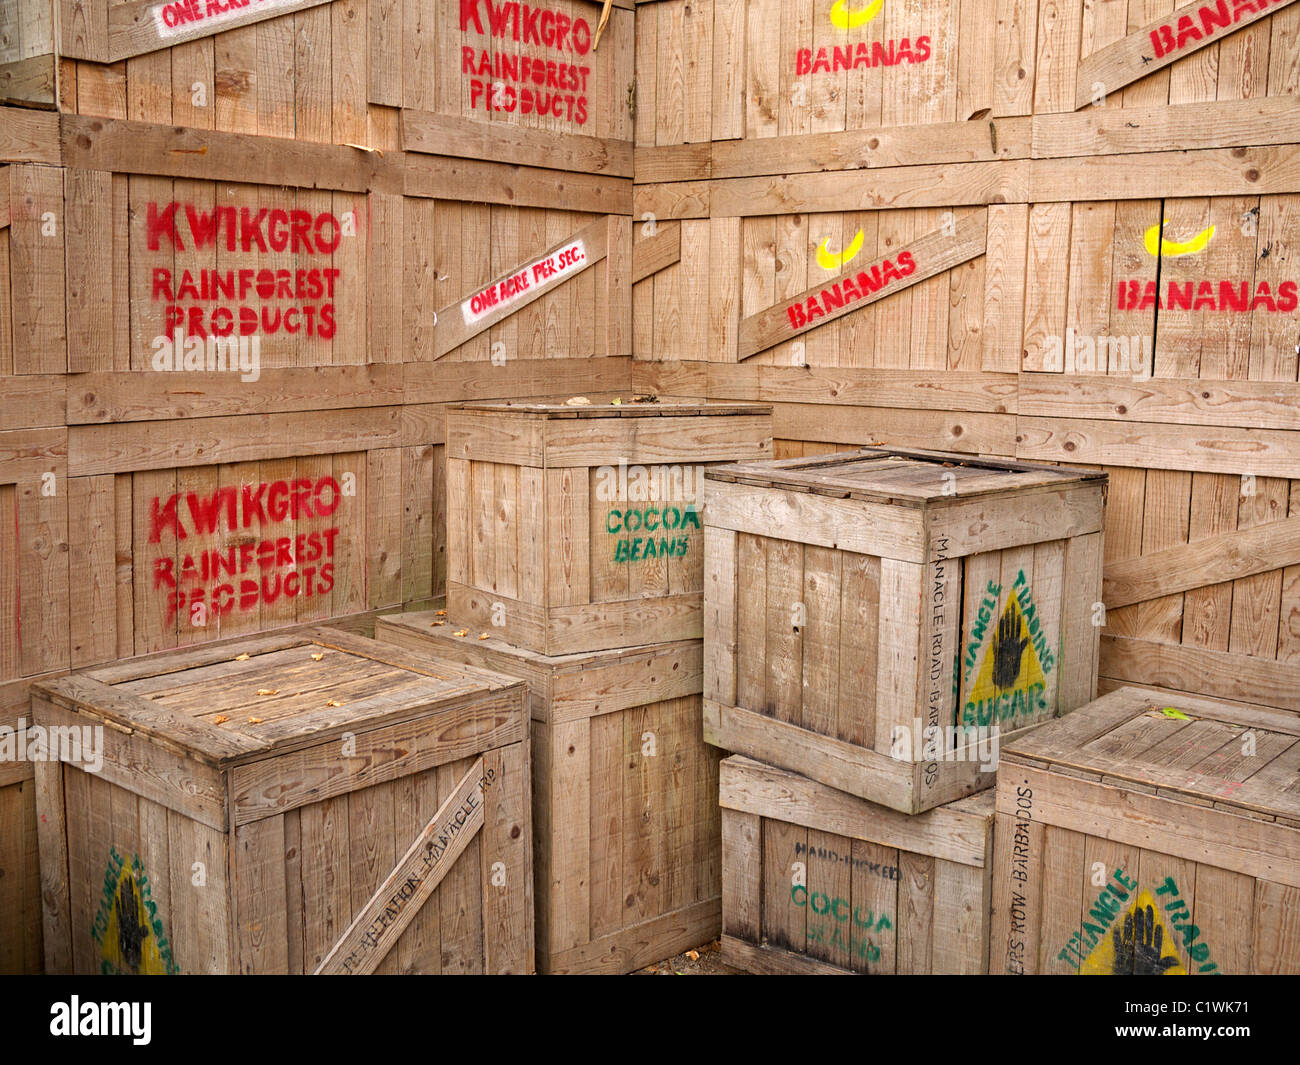 Wooden boxes containing rain forest products at the Eden project St Austell  Cornwall UK - Stock